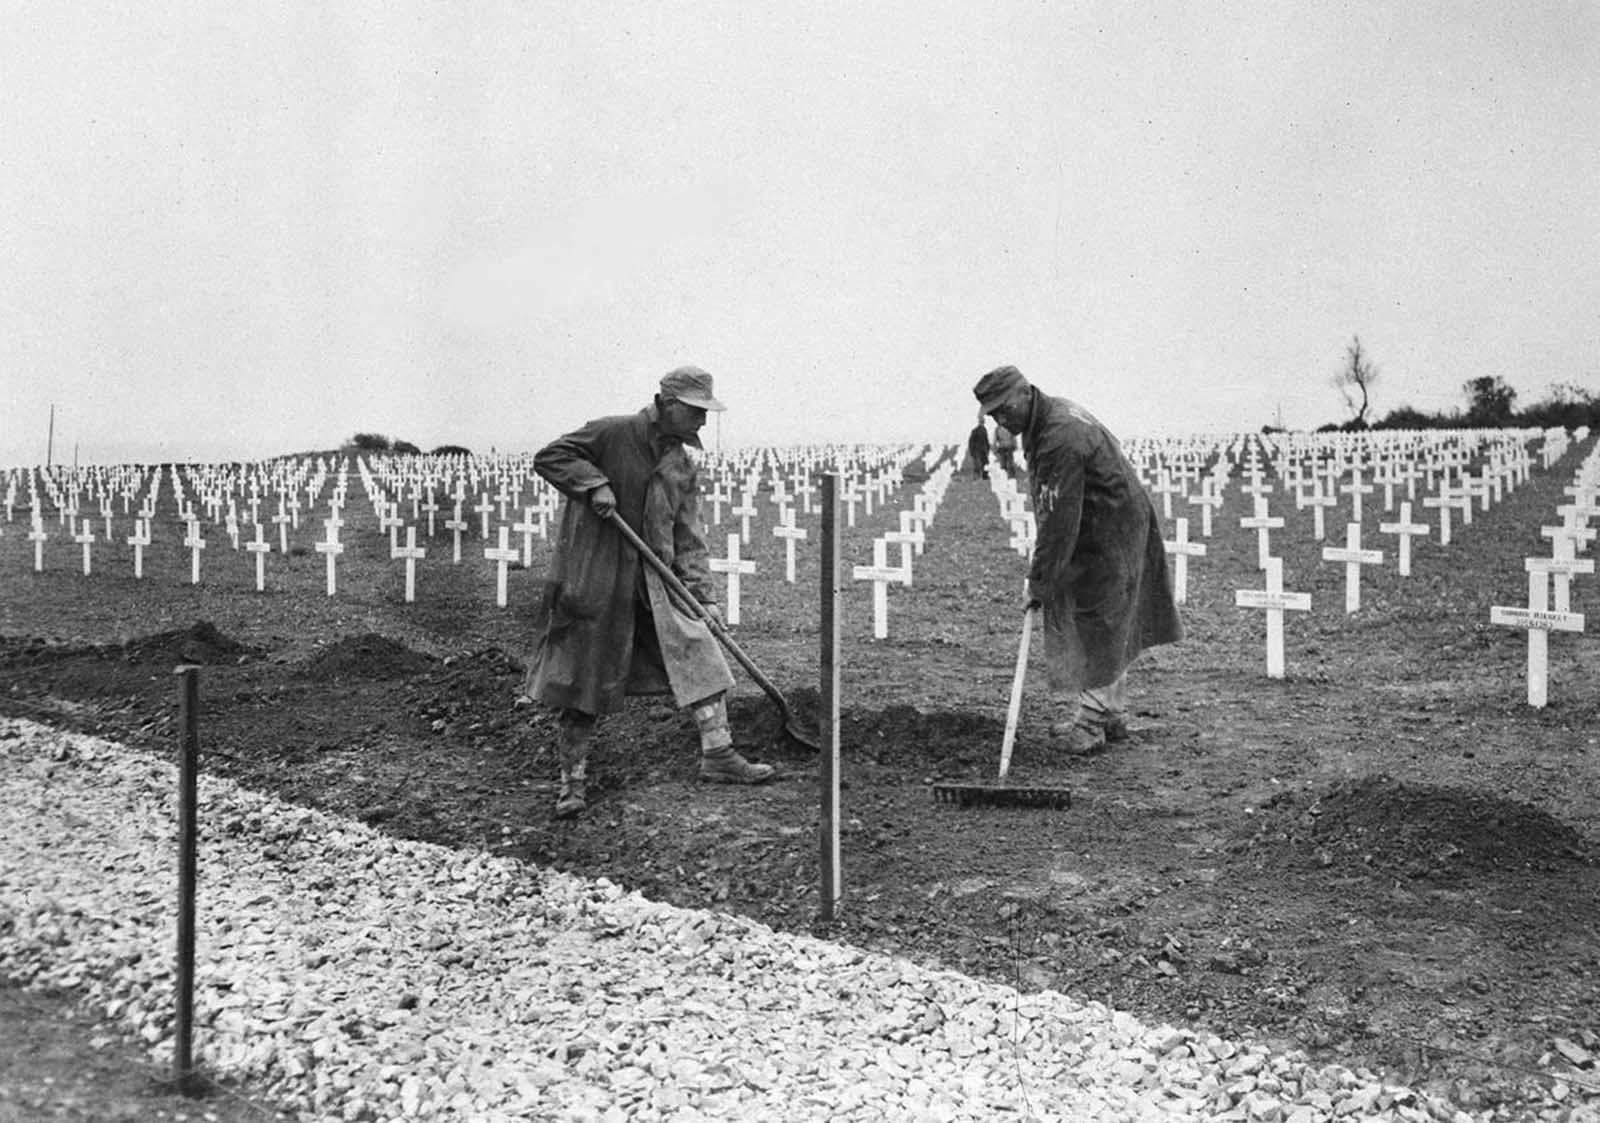 One year after the D-Day landings in Normandy, German prisoners landscape the first U.S. cemetery at Saint-Laurent-sur-Mer, France, near